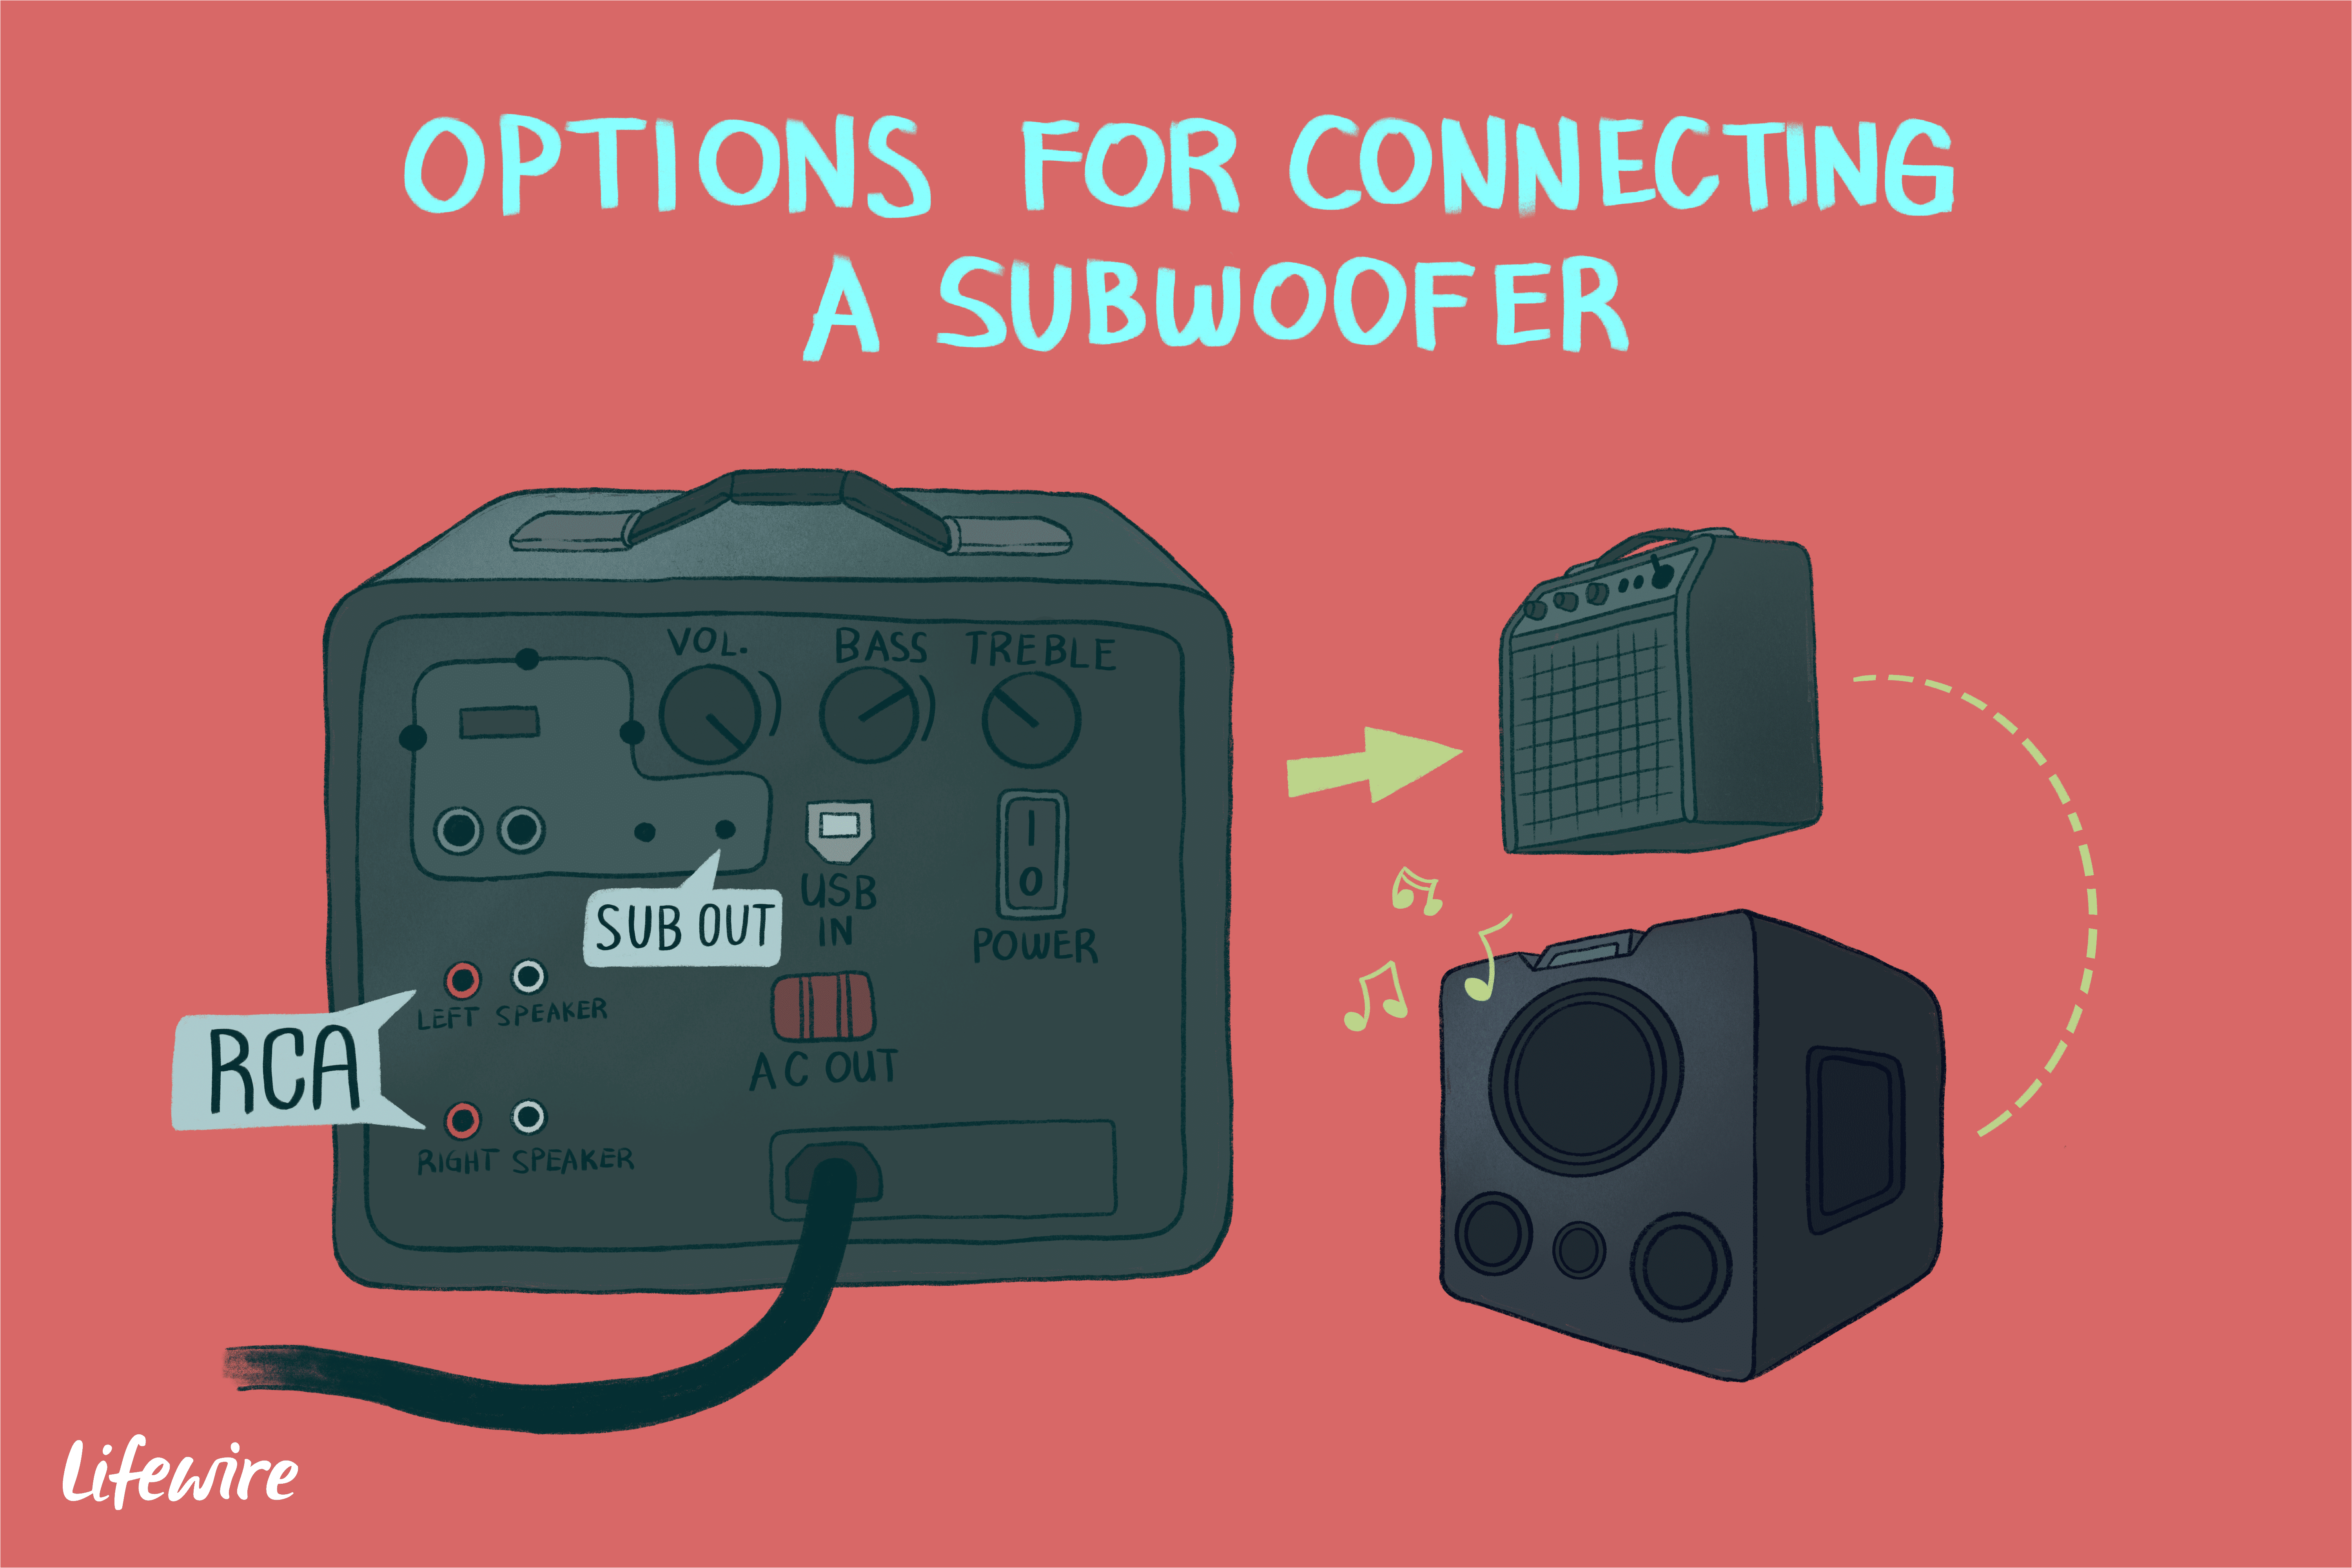 an illustration of the options for connecting a subwoofer